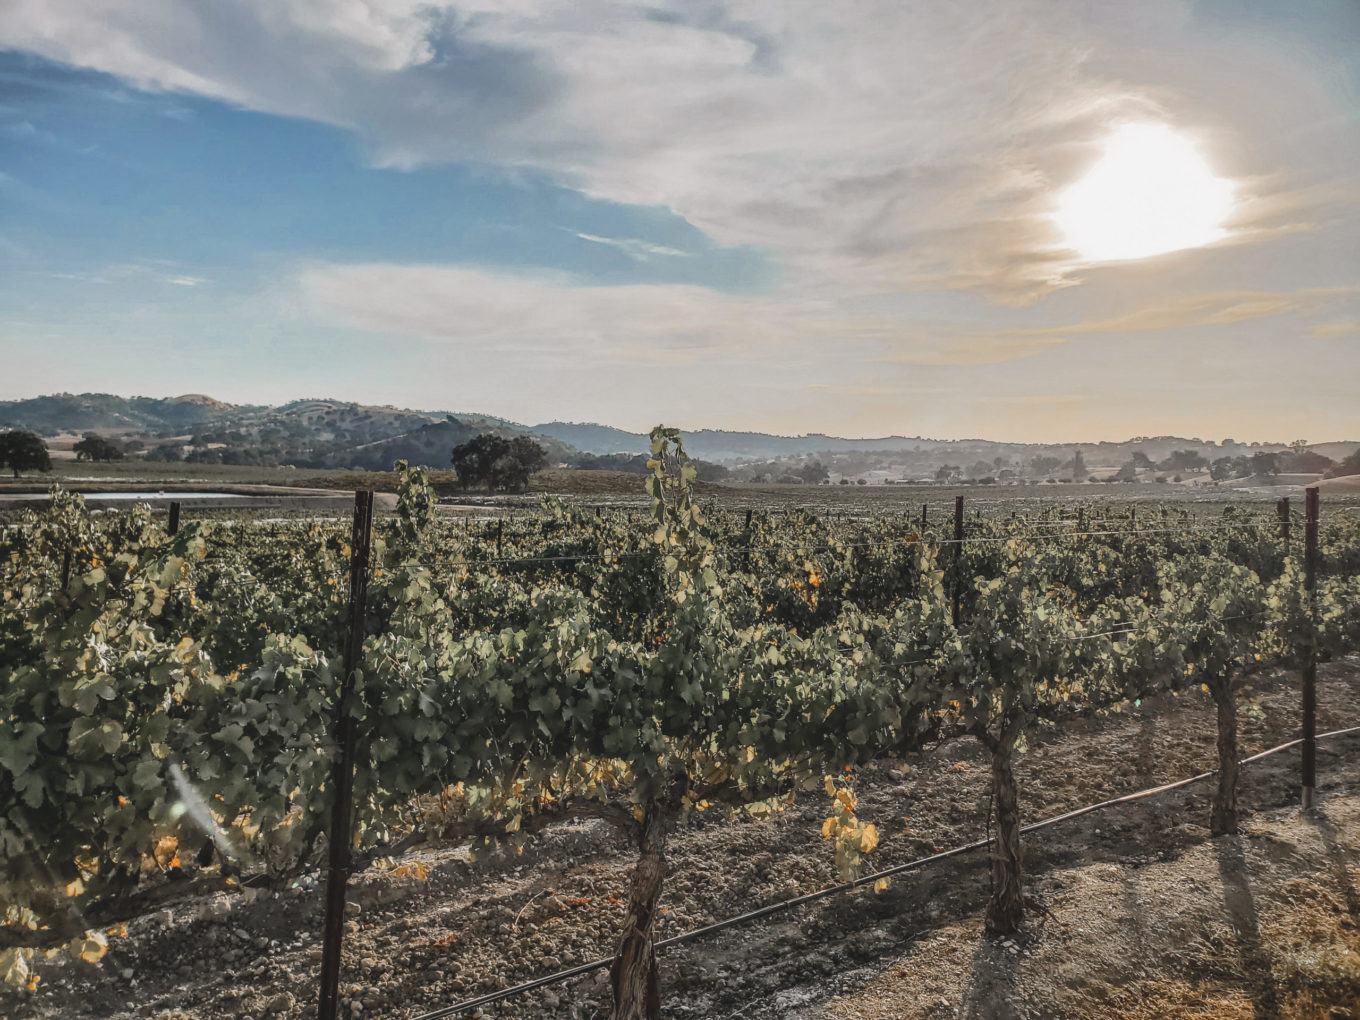 vineyards in paso robles wine country